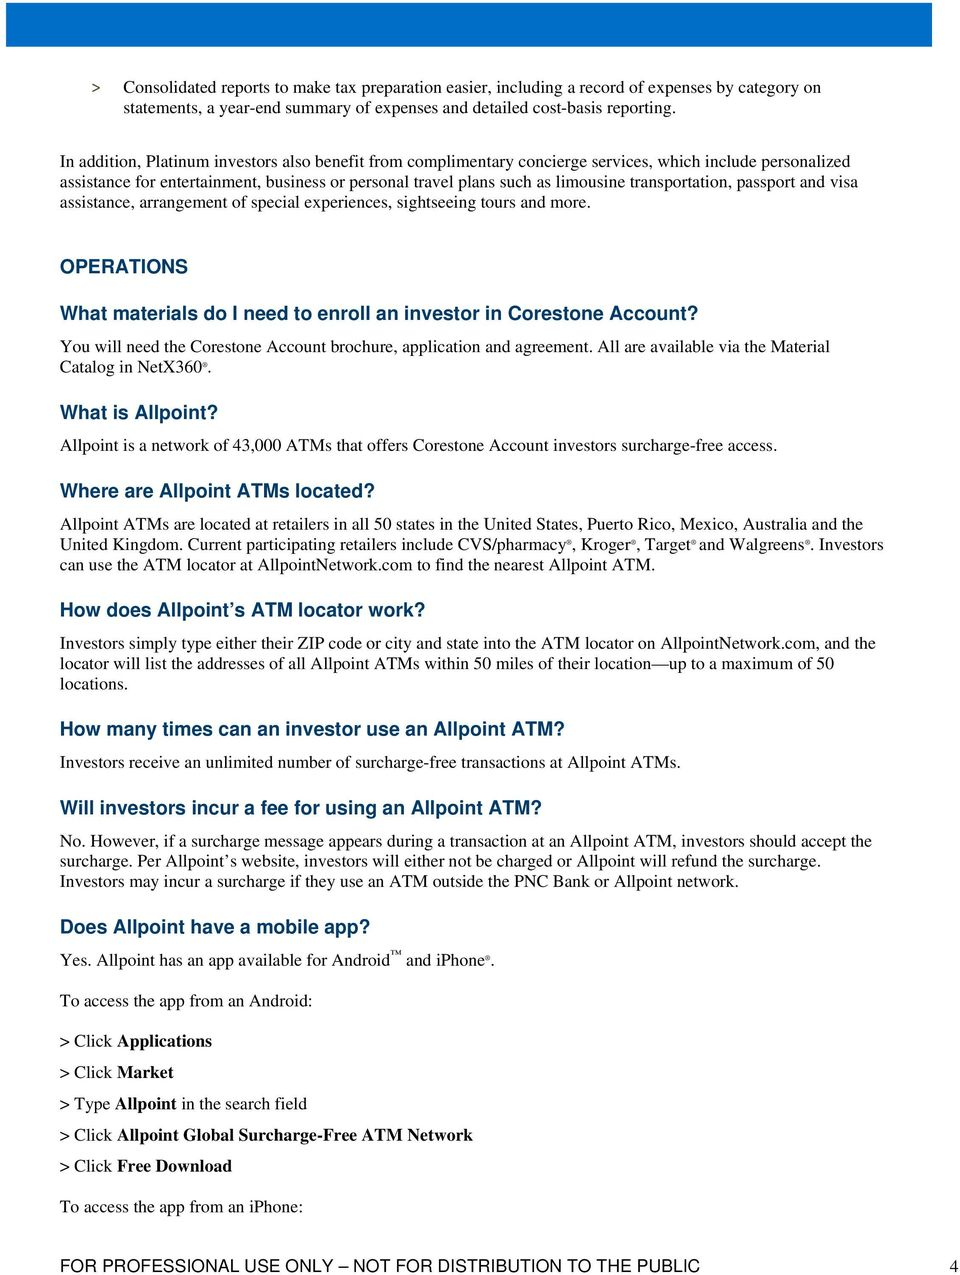 Corestone Account Frequently Asked Questions - PDF